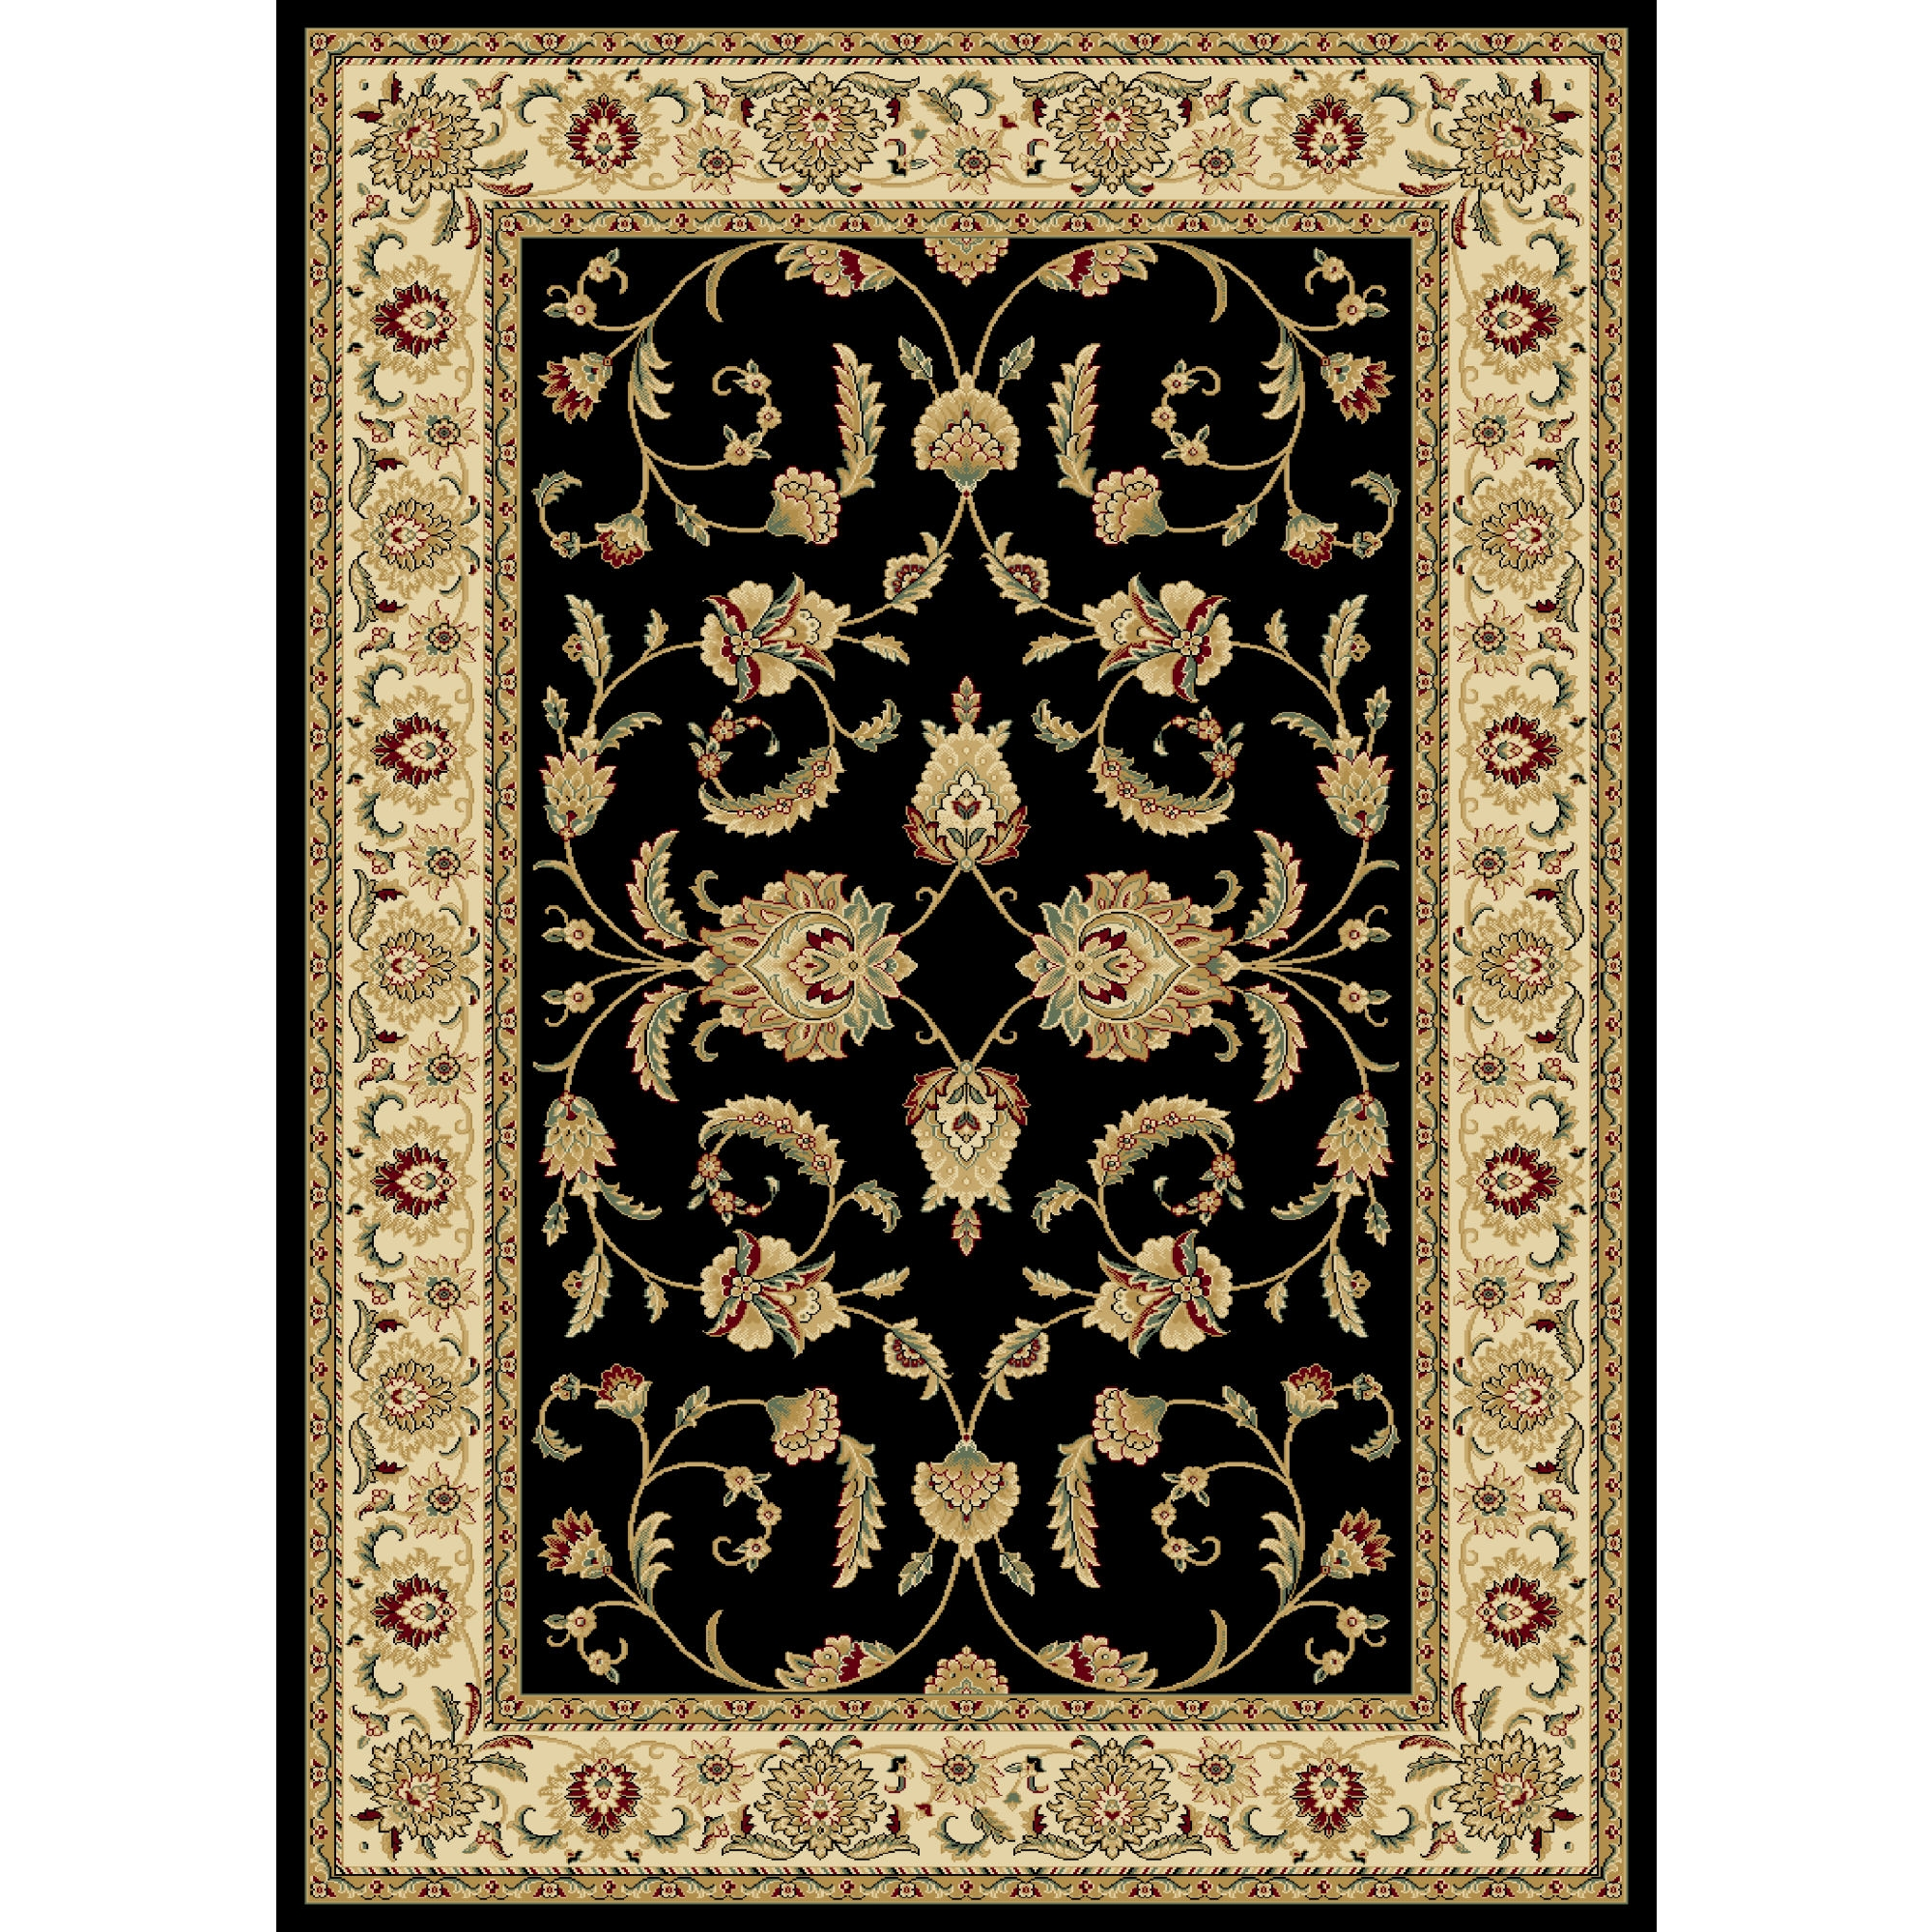 Black Persian Rug Roselawnlutheran Intended For Oriental Persian Rugs (View 11 of 15)